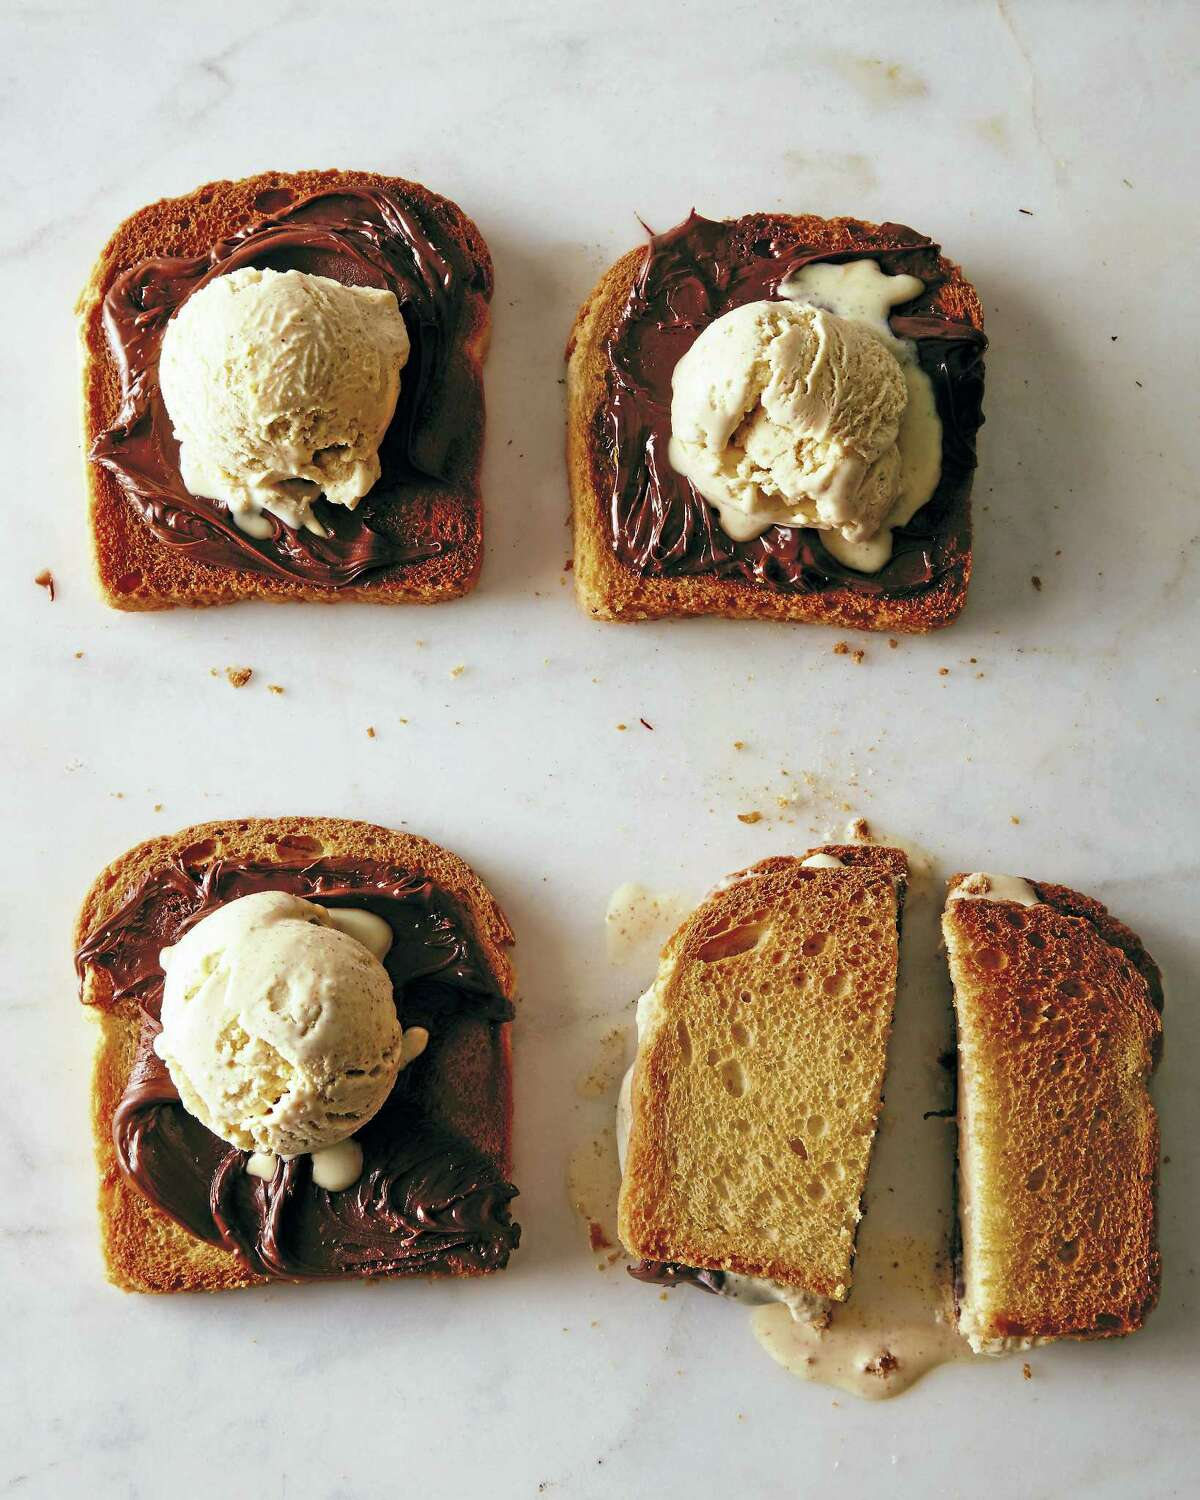 Burnt toast ice cream.